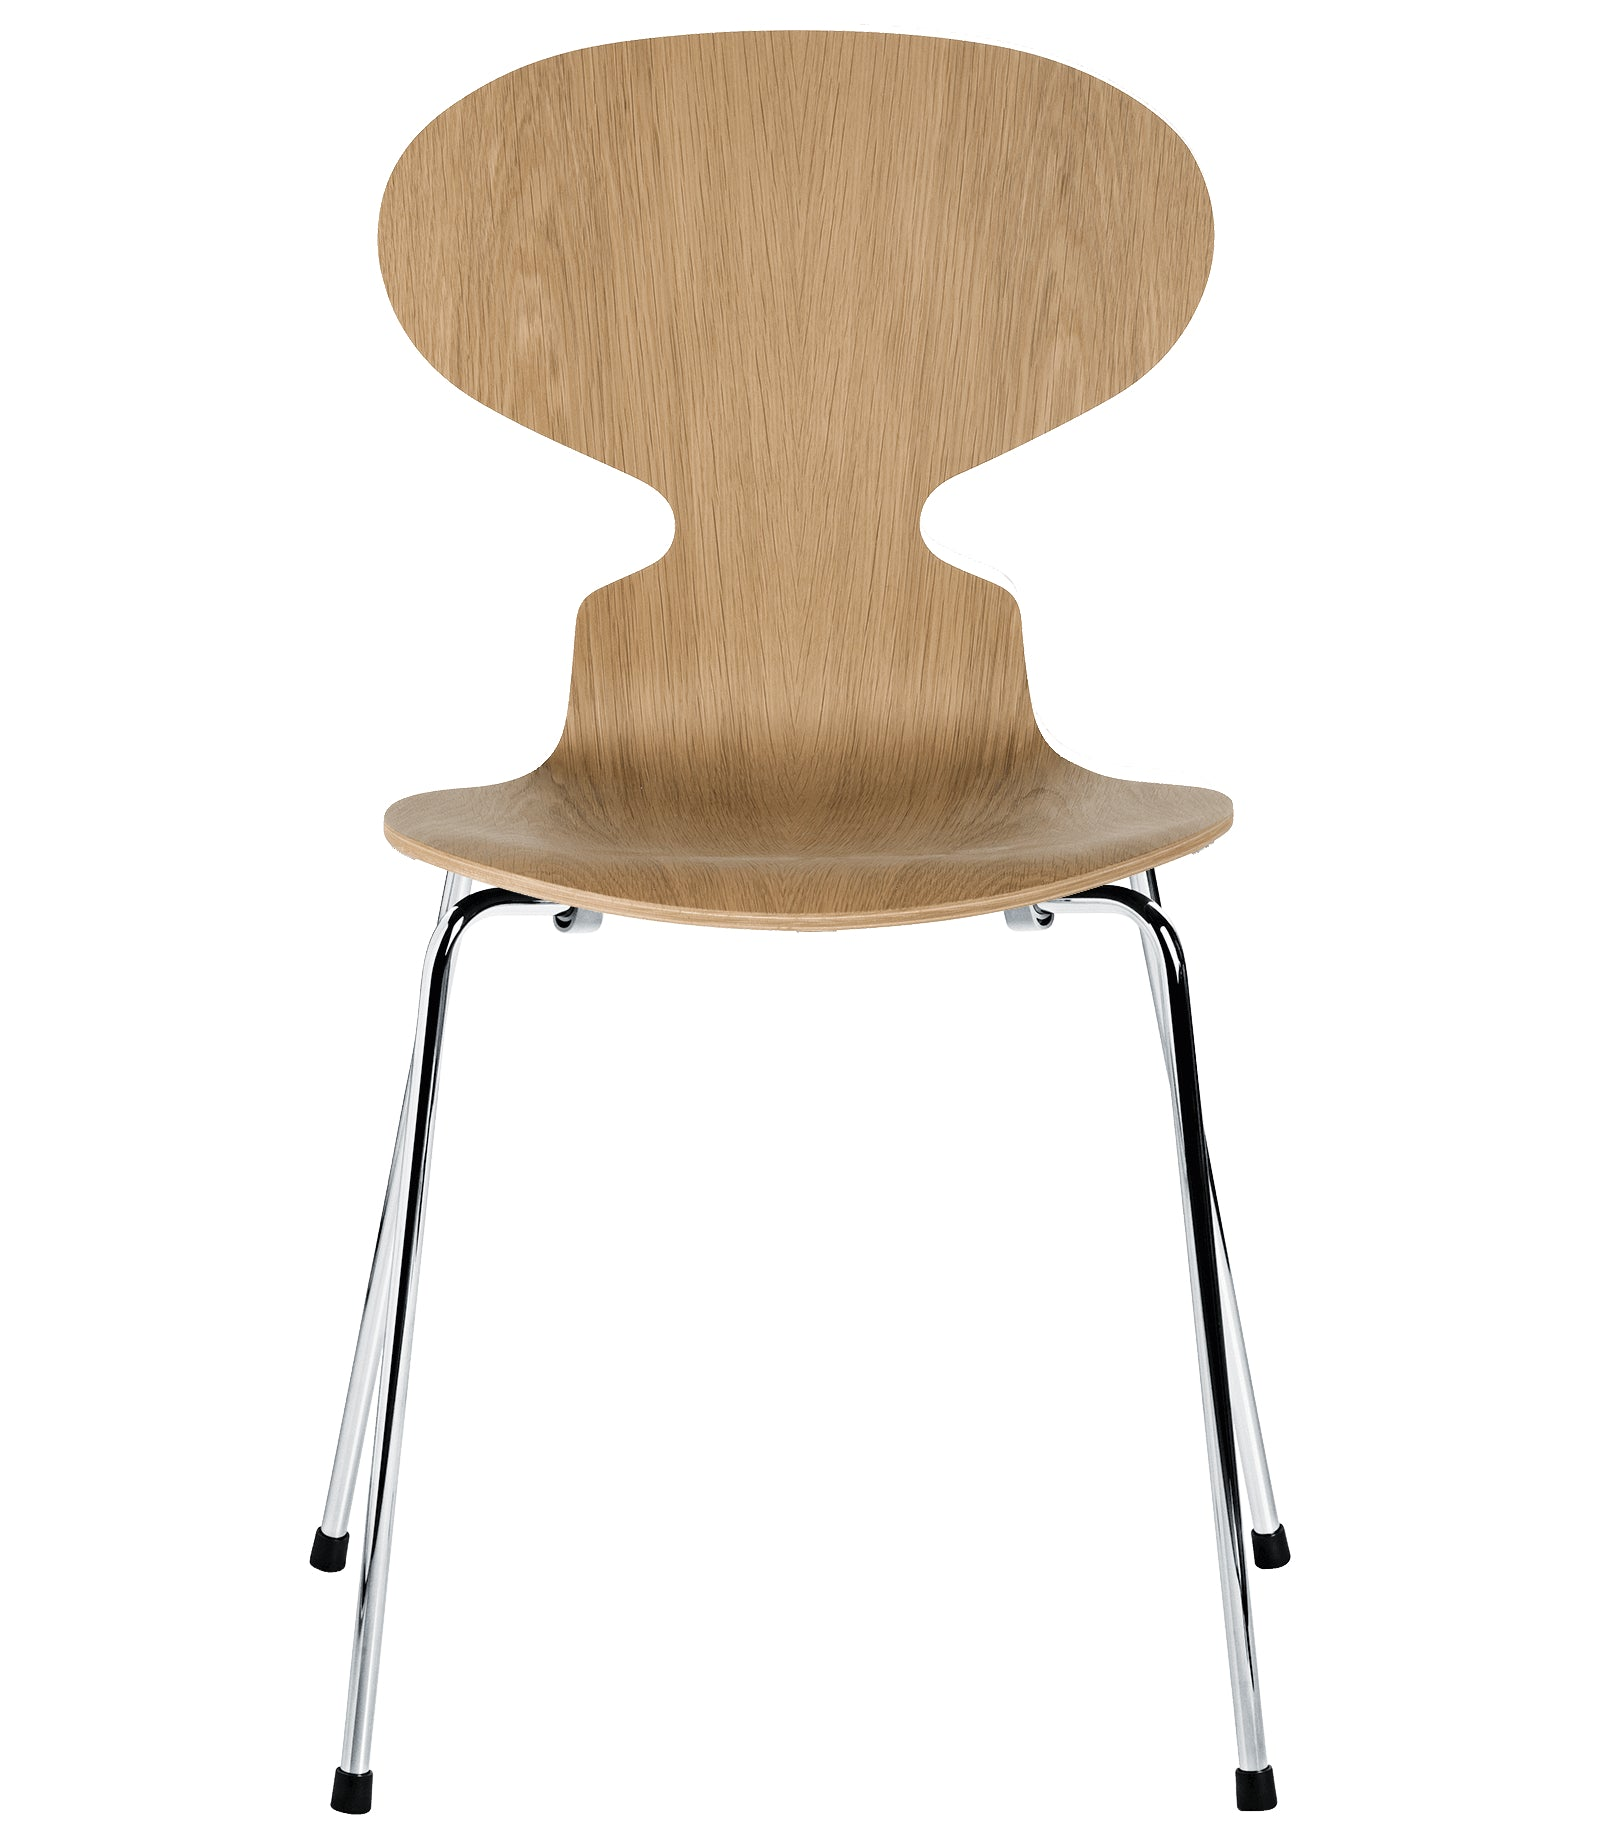 Arne Jacobsen the Ant